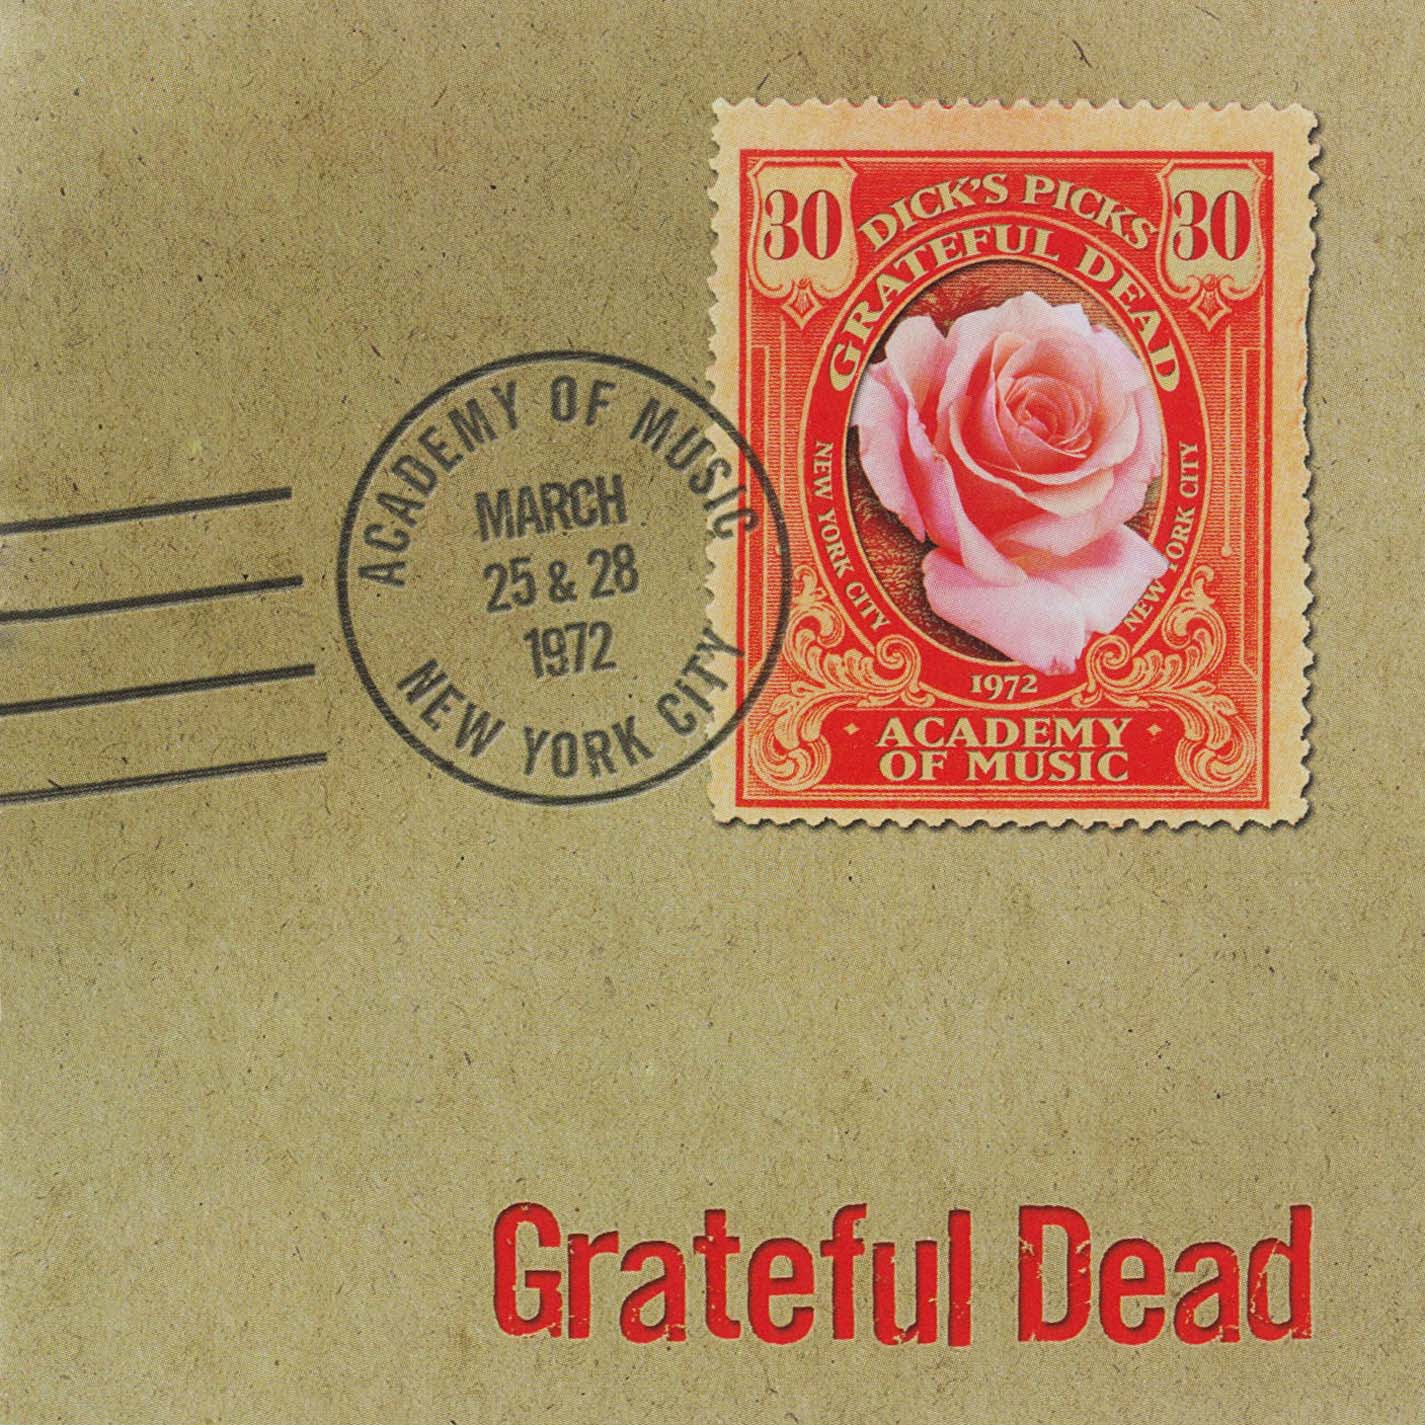 Grateful Dead Dick's Picks 30 album cover artwork